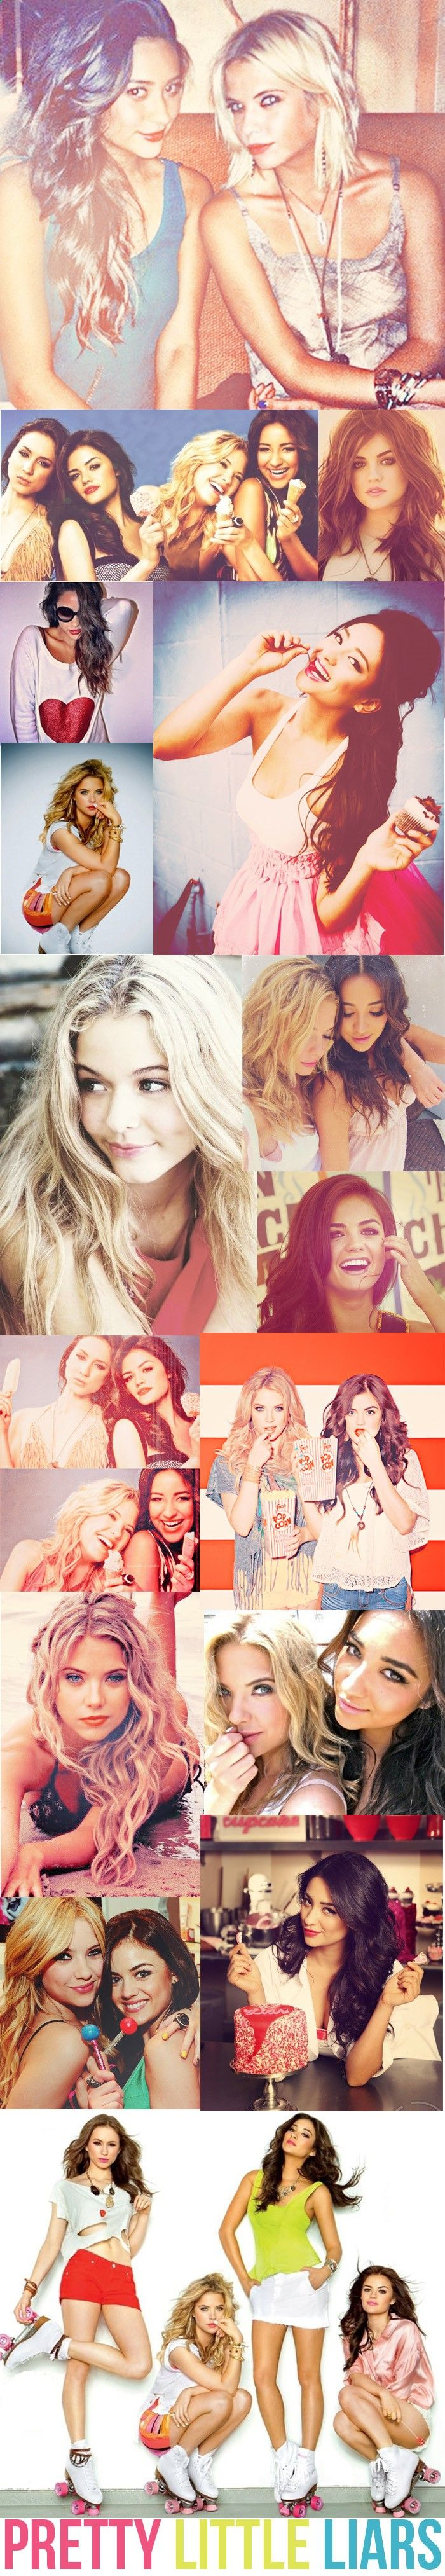 Secret Obsession - Ashley Benson (Hannah Marin), Lucy Hale ( Aria Montgomery), Shay Mitchell (Emily Fields), Troian Bellisario (Spencer Hastings) and Sasha Pieterse (Alison DiLaurentis) - Pretty Little Liars #PLL  - His Secret Obsession.Earn 75% Commissions On Front And Backend Sales Promoting His Secret Obsession - The Highest Converting Offer In It's Class That is Taking The Women's Market By Storm